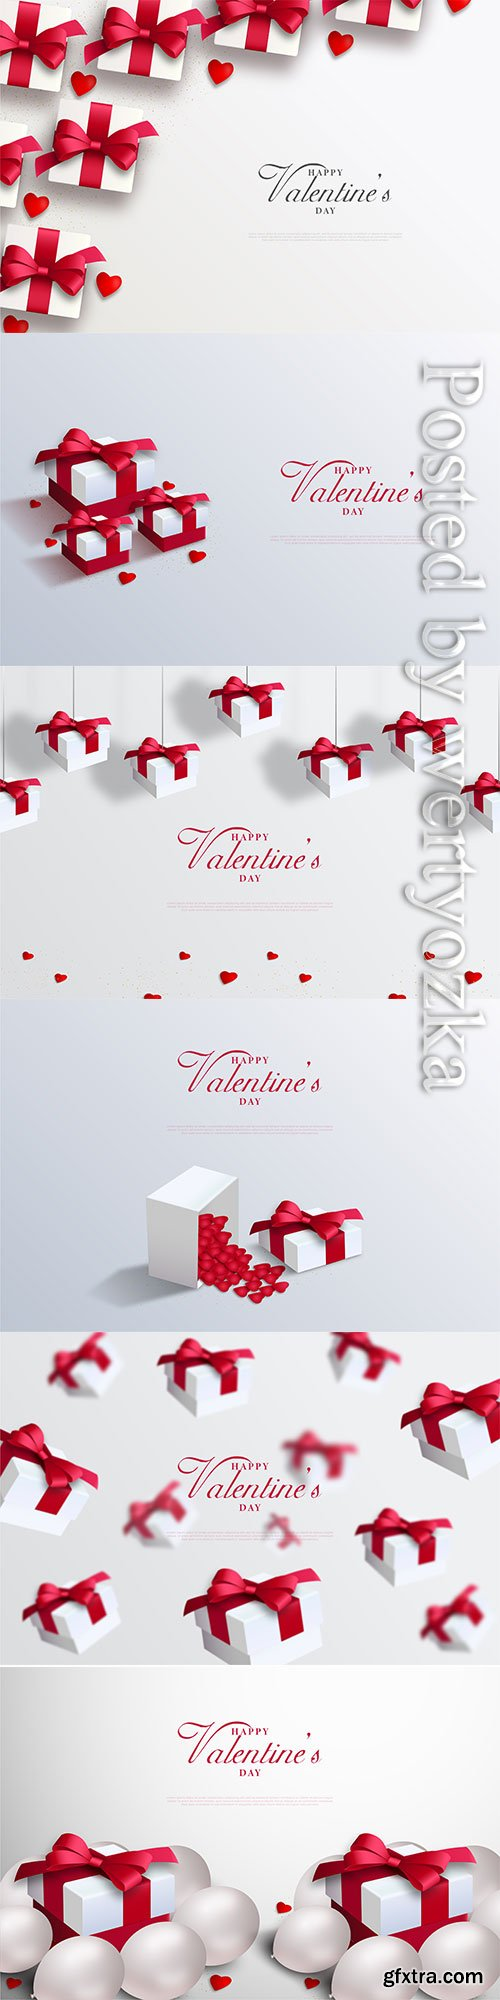 Valentine day vector card with love balloons and gift box